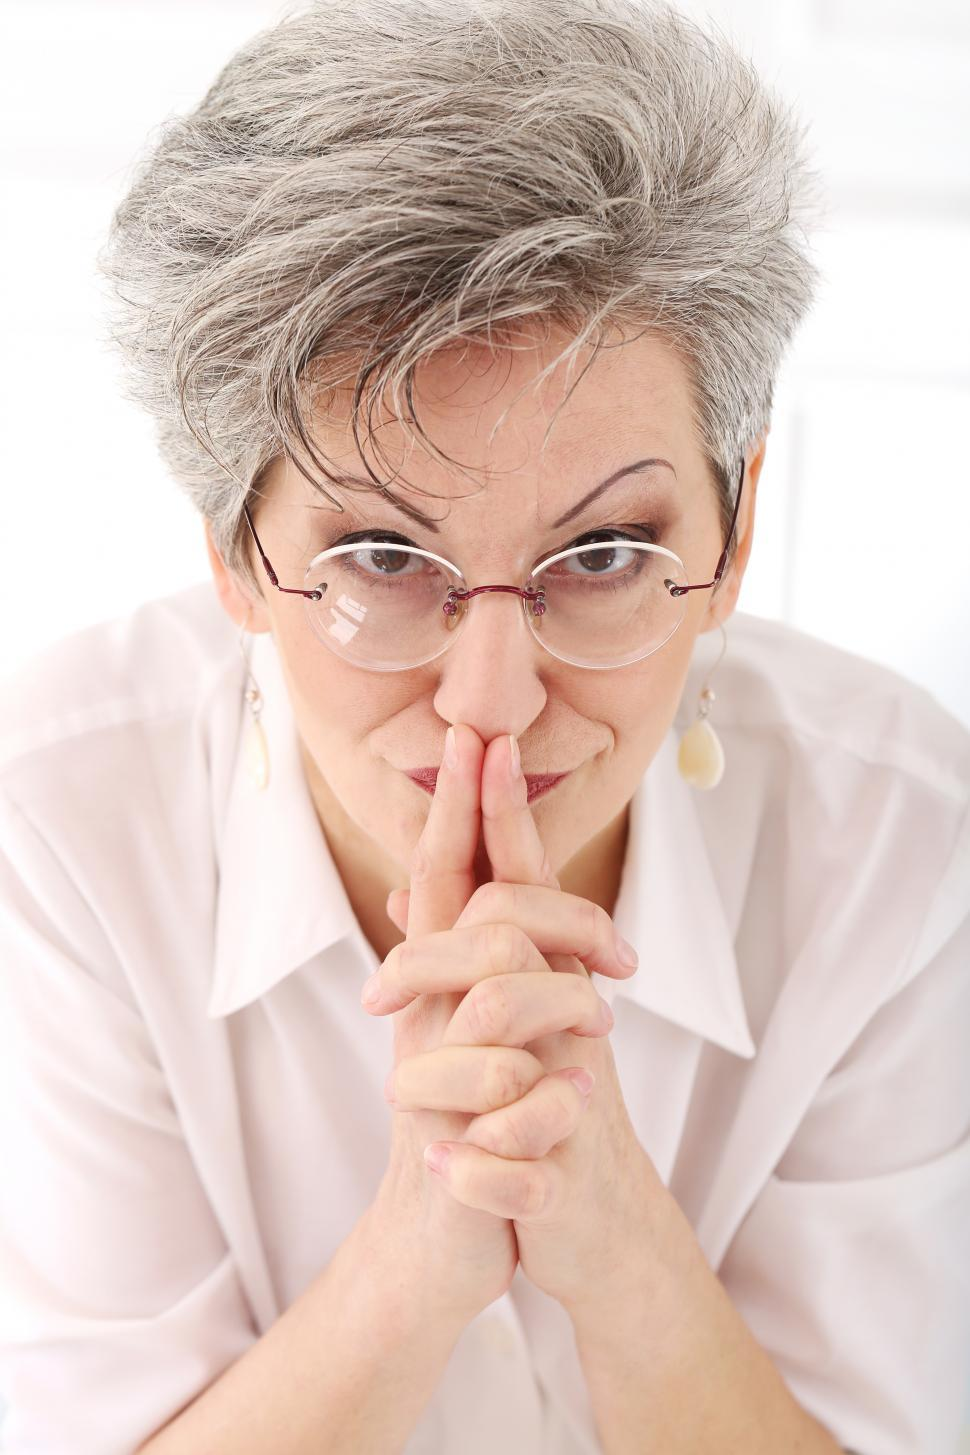 Download Free Stock Photo of Elderly woman looking thoughtful